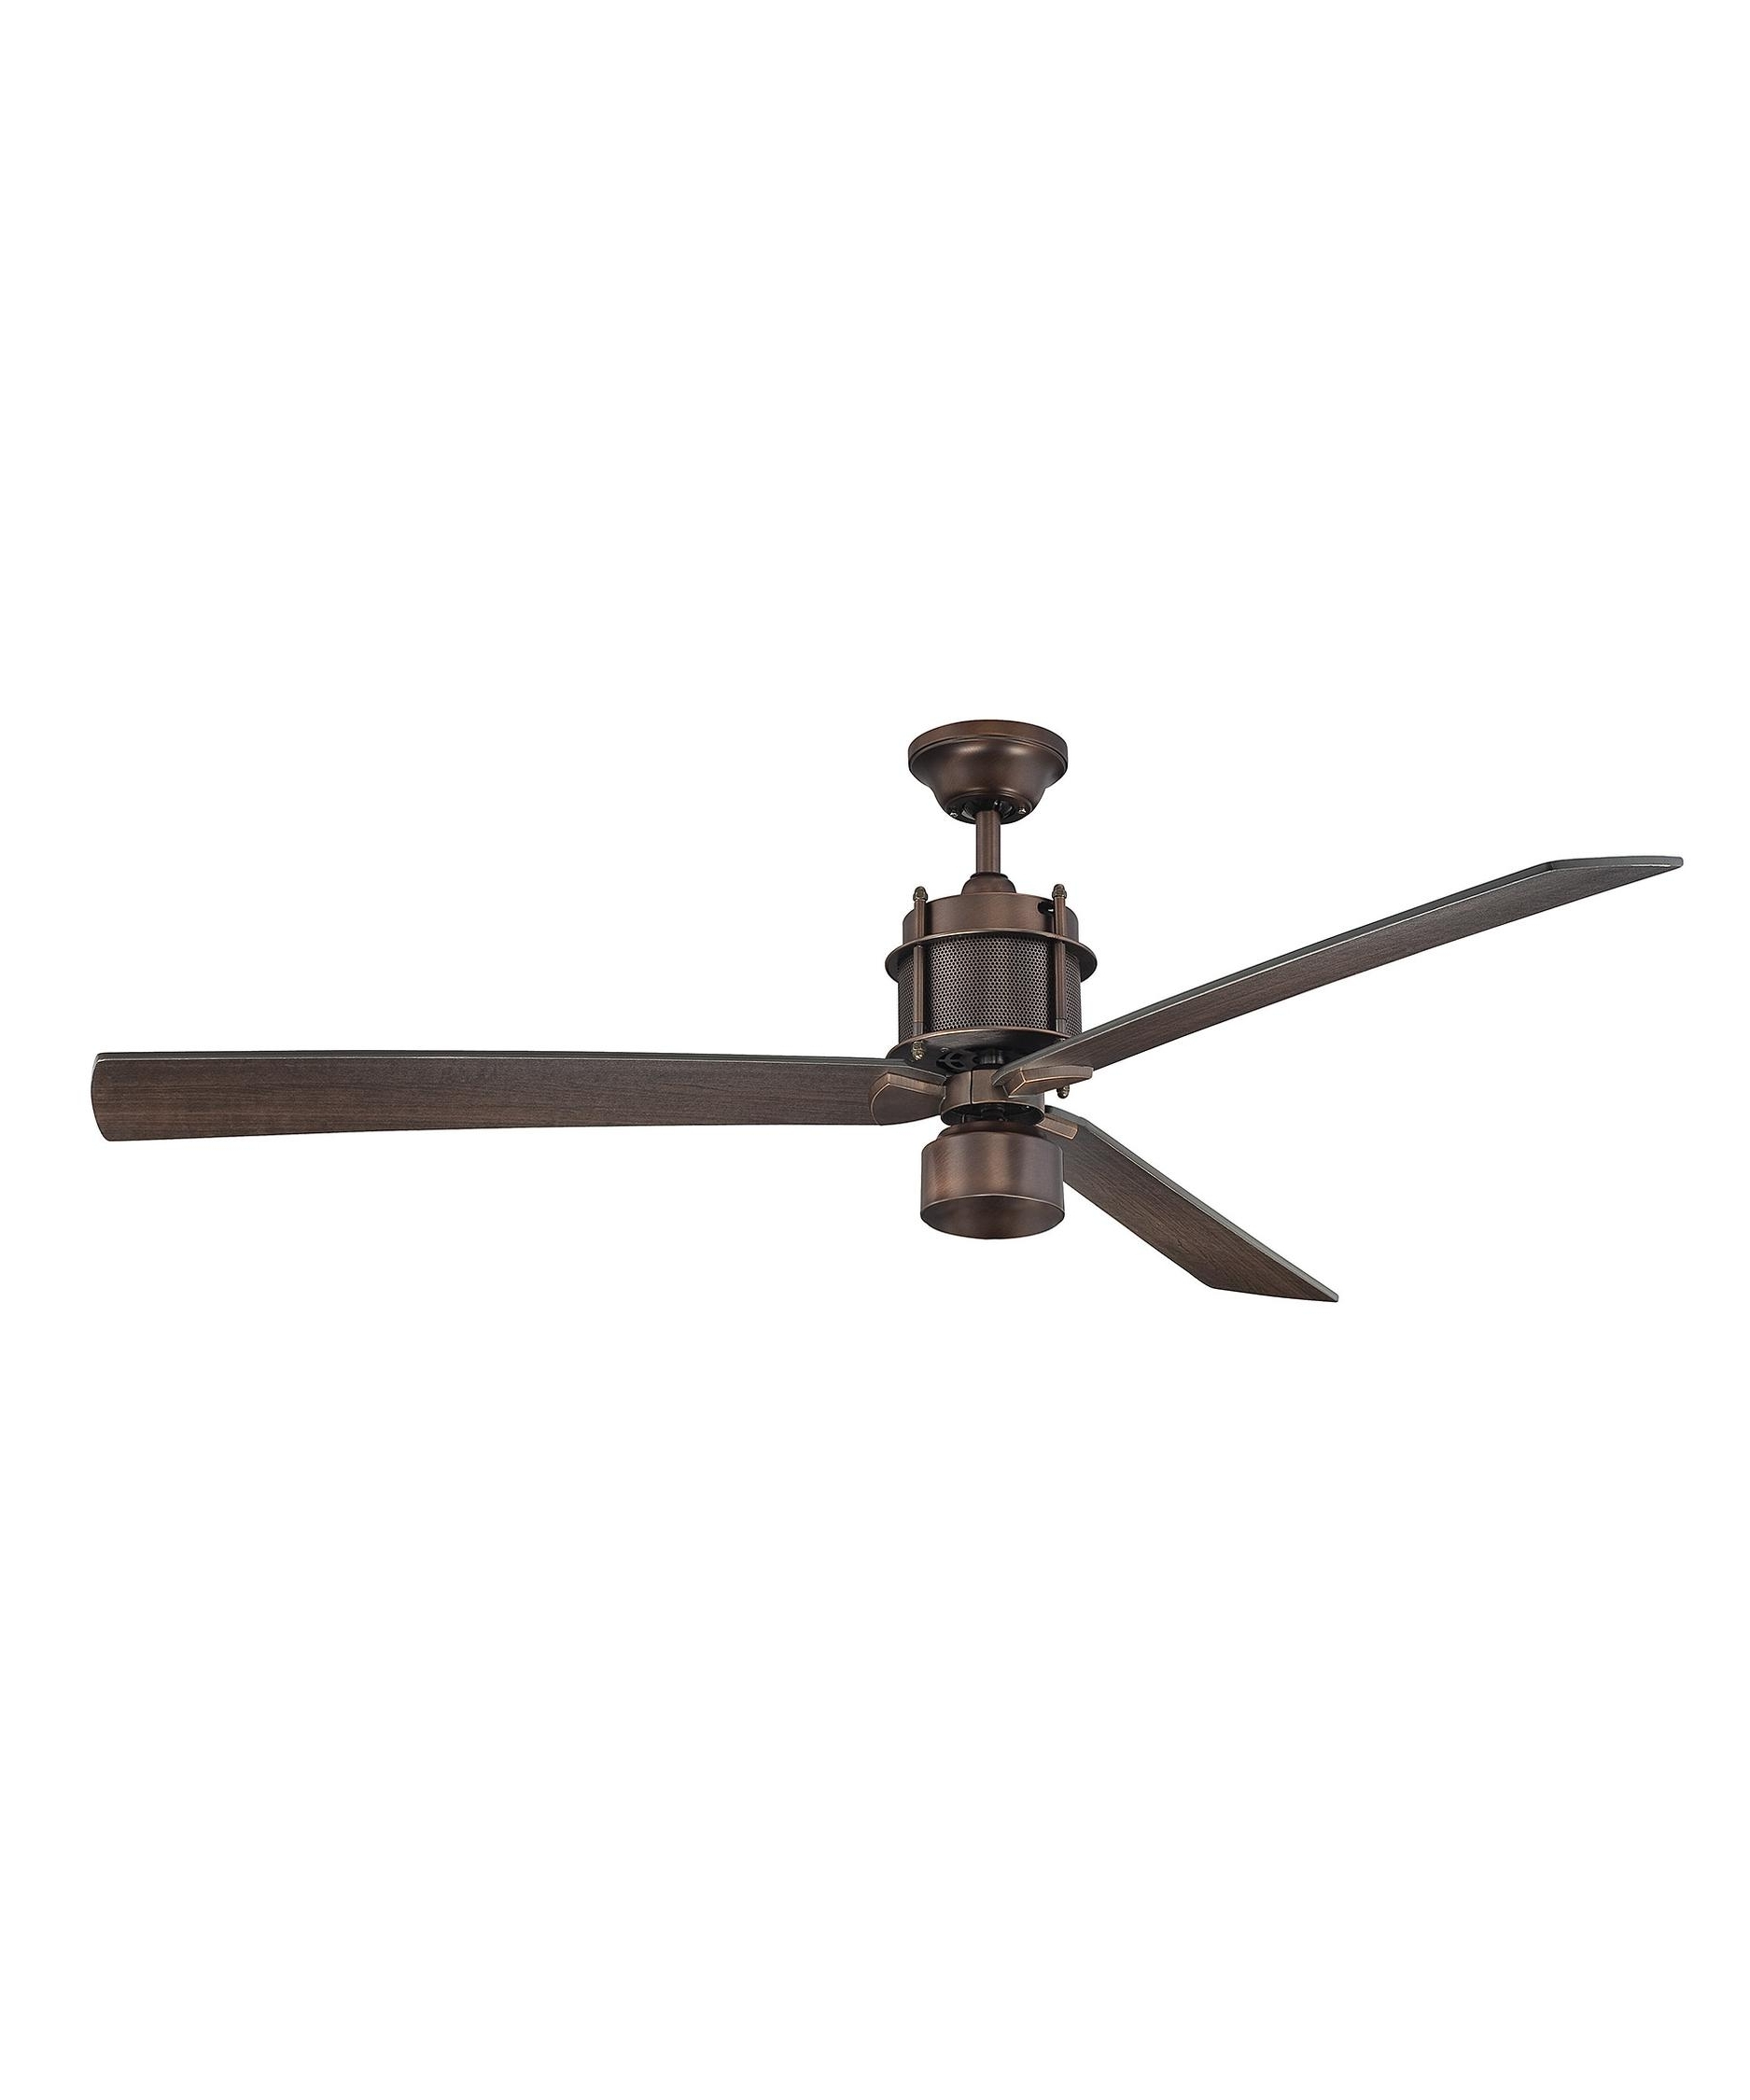 Savoy House 56 870 3 Muir 56 Inch 3 Blade Ceiling Fan (View 20 of 20)